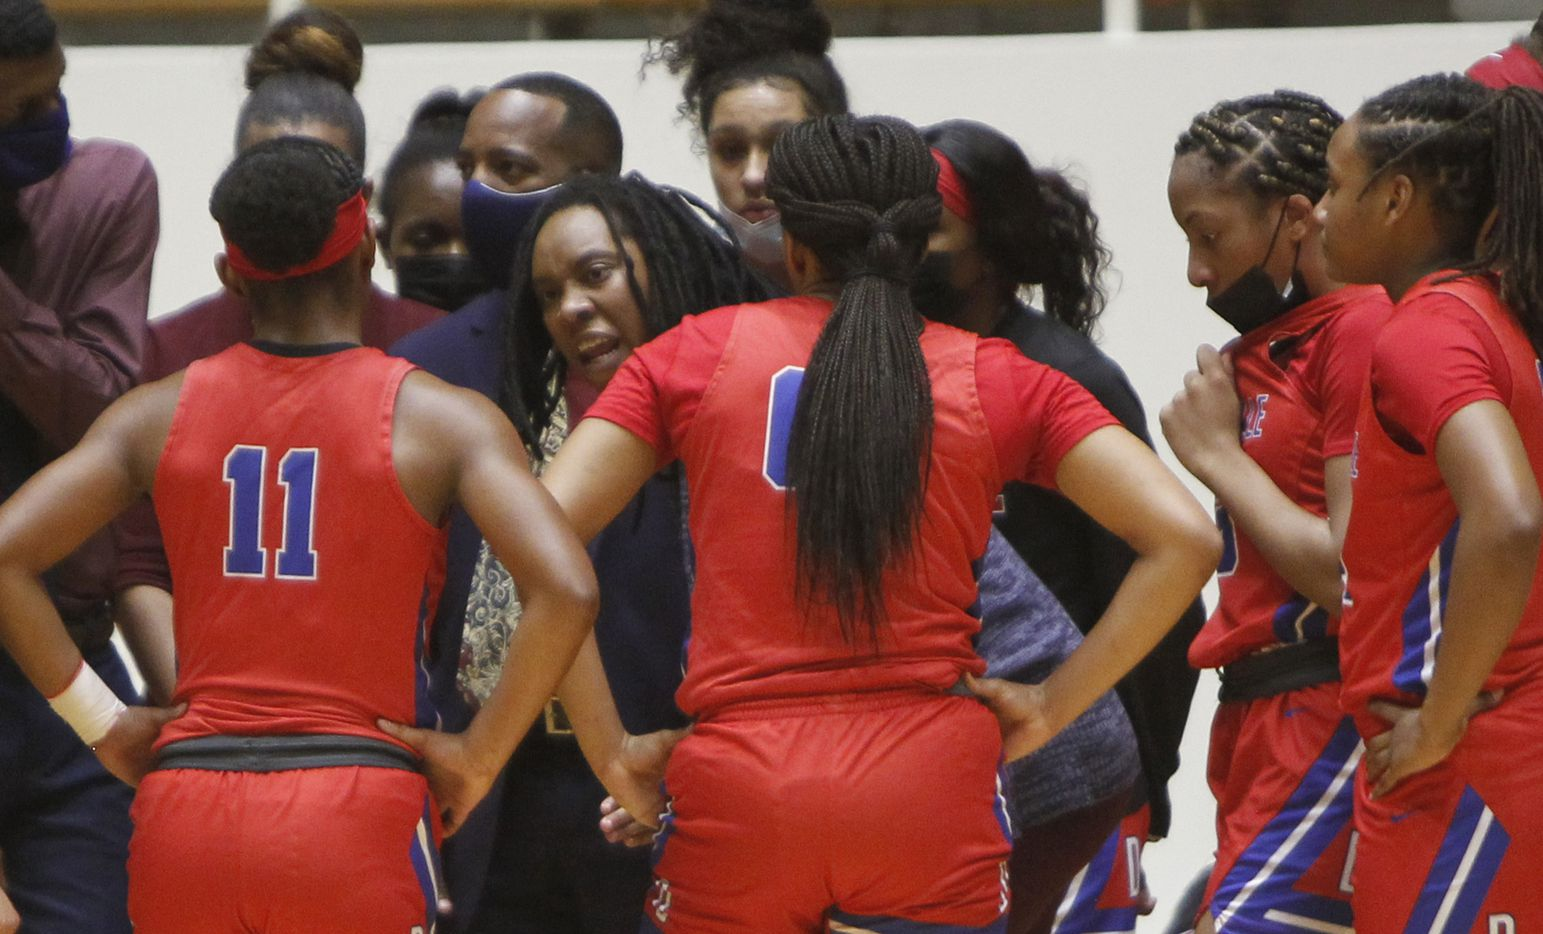 Duncanville Pantherettes head coach LaJeanna Howard speaks with her players during the first half of their game against Mesquite Horn. The two teams played their Class 6A area-round playoff basketball game at Loos Field House in Addison on February 23, 2021. (Steve Hamm/ Special Contributor)